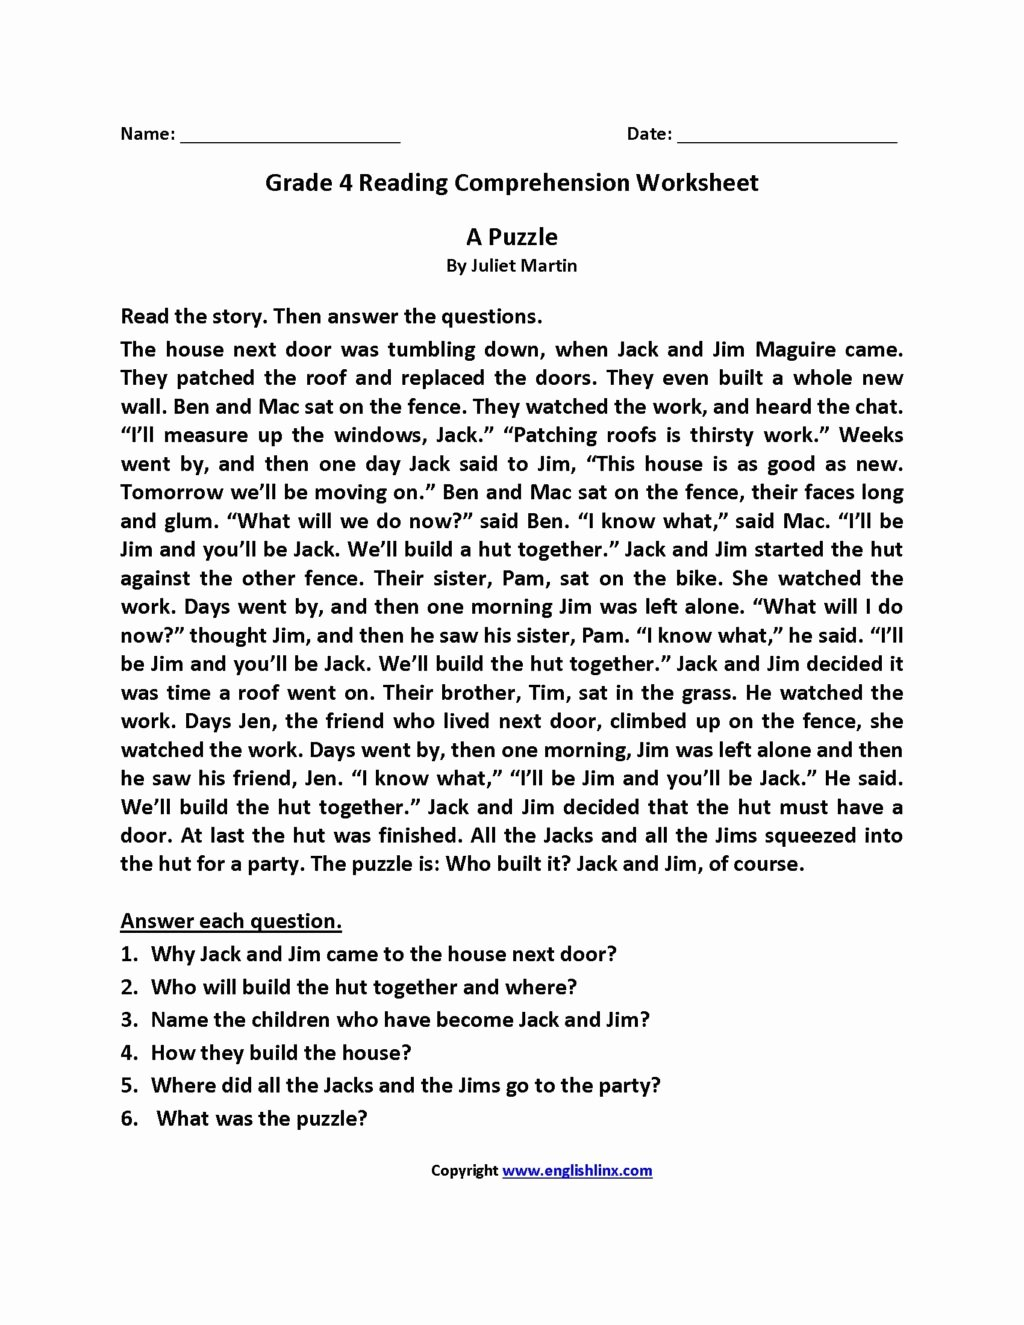 Reading Comprehension Worksheets 6th Grade Fresh Worksheet Stunning Third Grade Reading Prehensionets